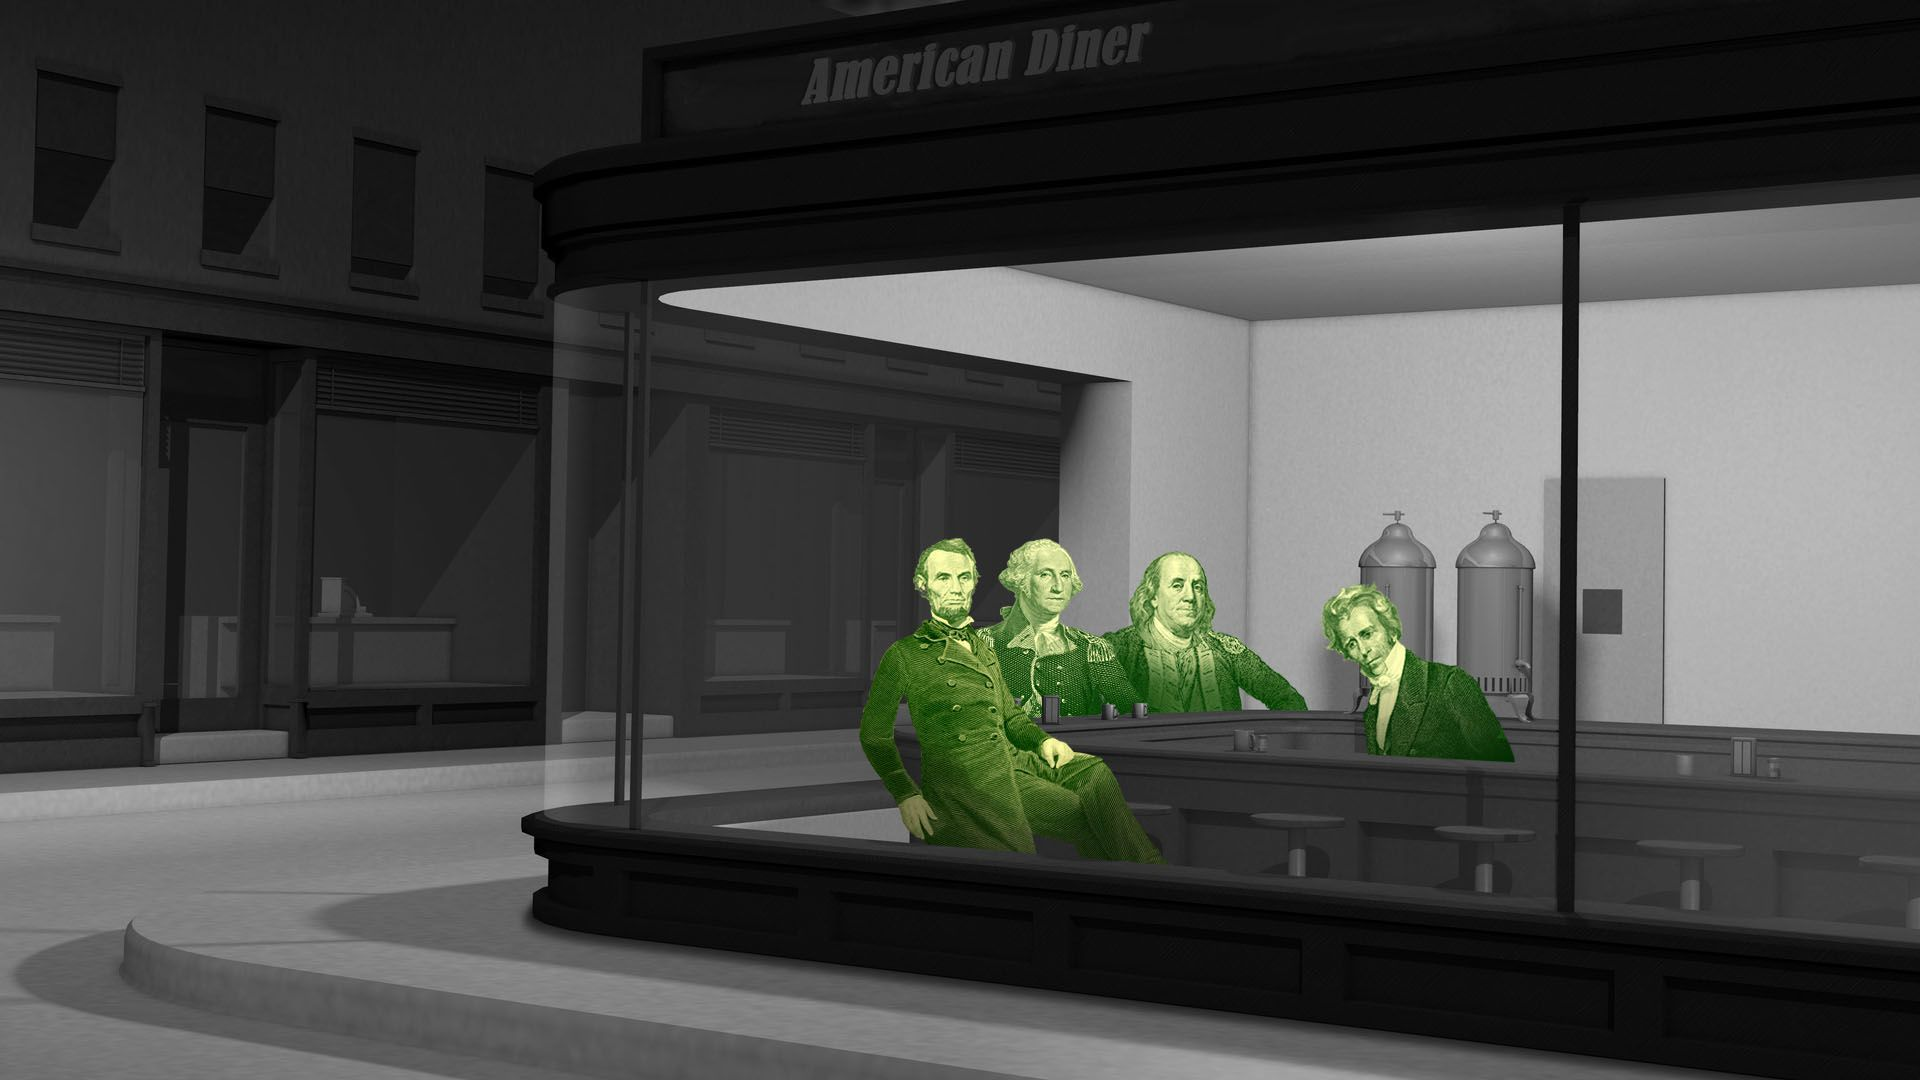 In this illustration, the founding fathers sit in a room